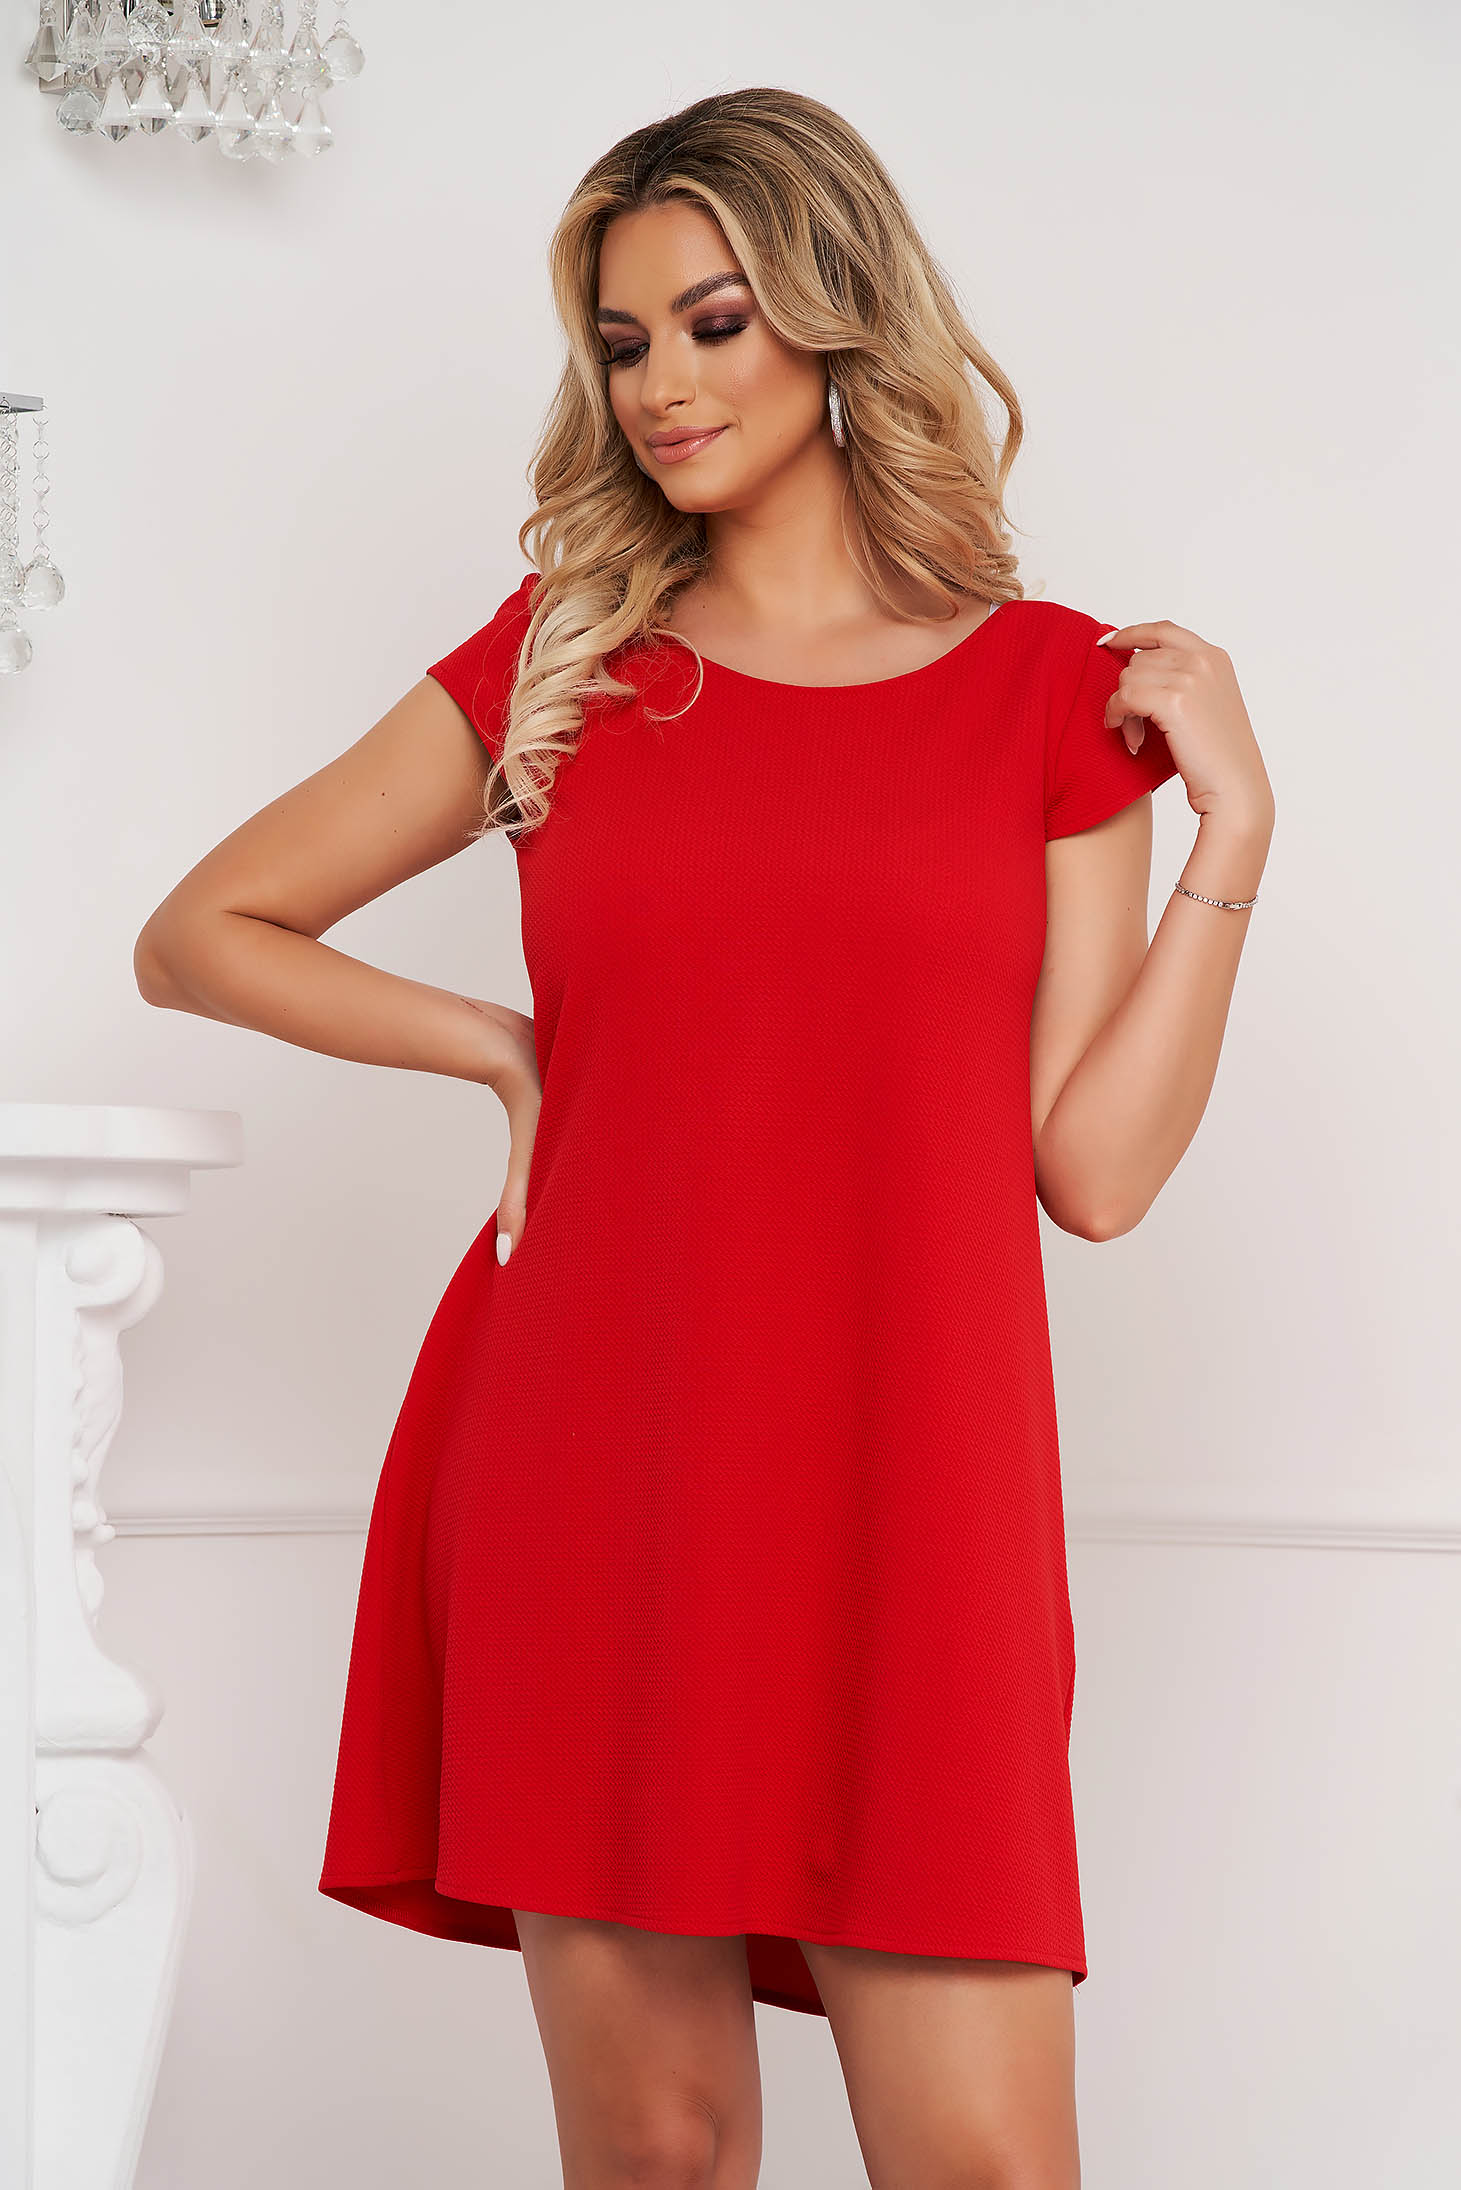 StarShinerS red dress short cut loose fit wrinkled material with cut back